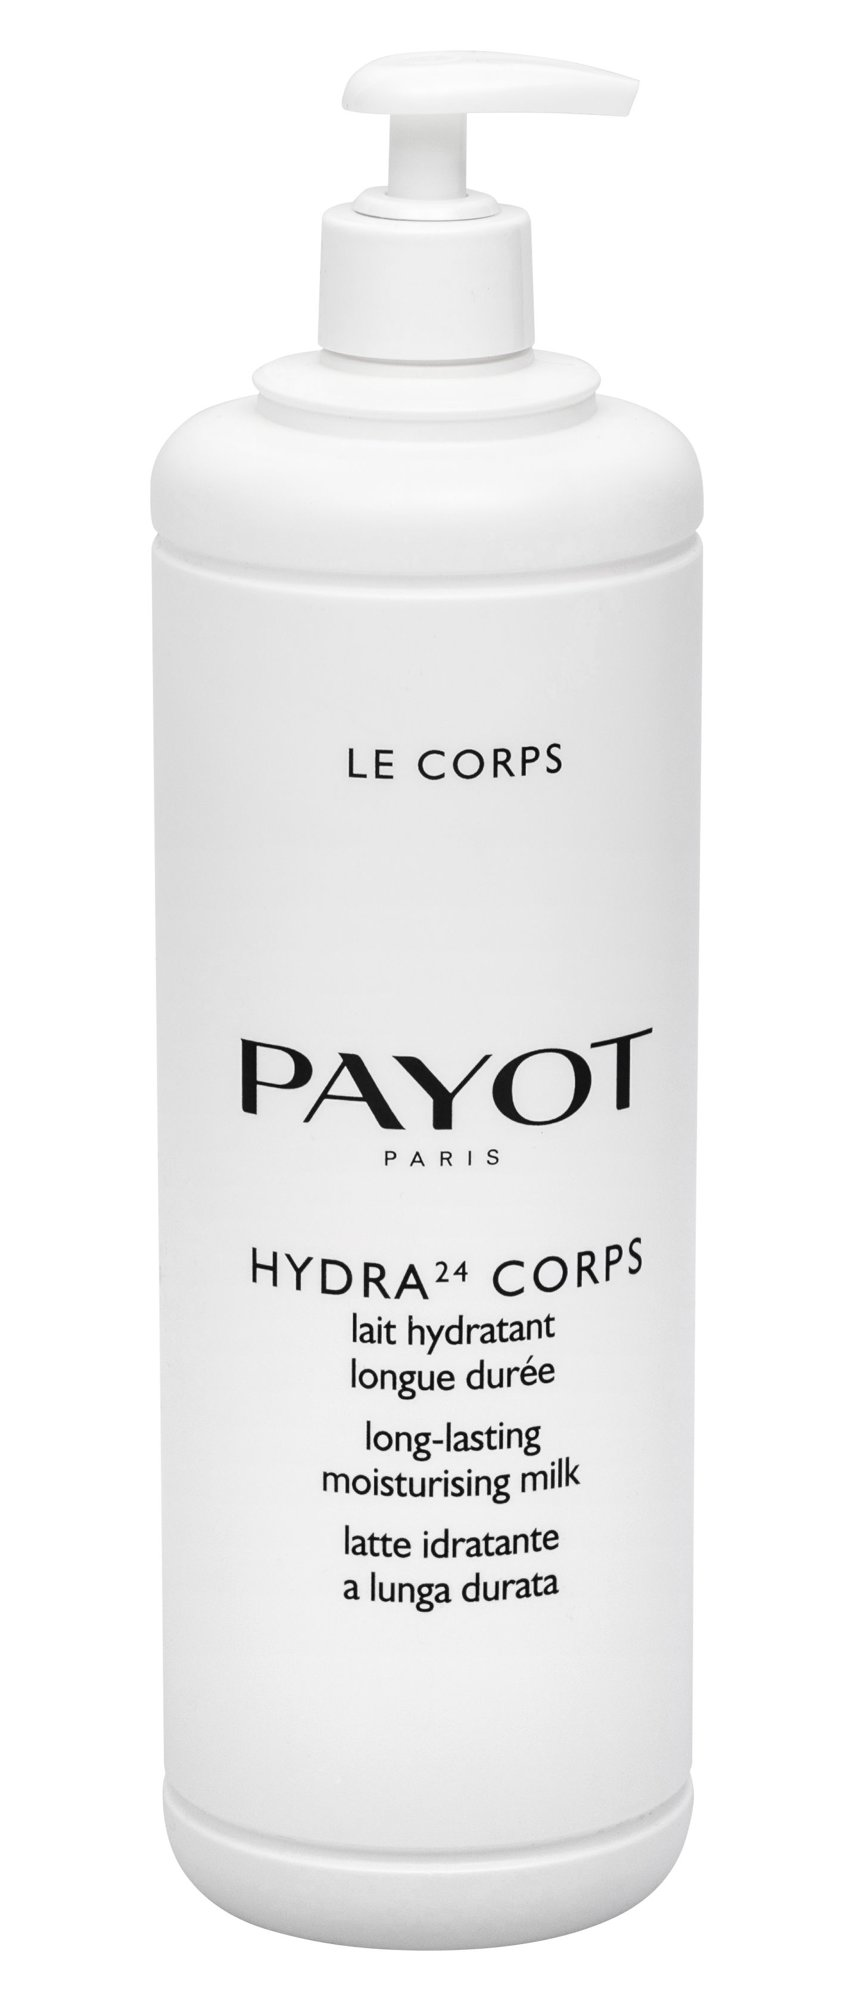 PAYOT Le Corps Body Lotion 1000ml  Hydra24 Corps